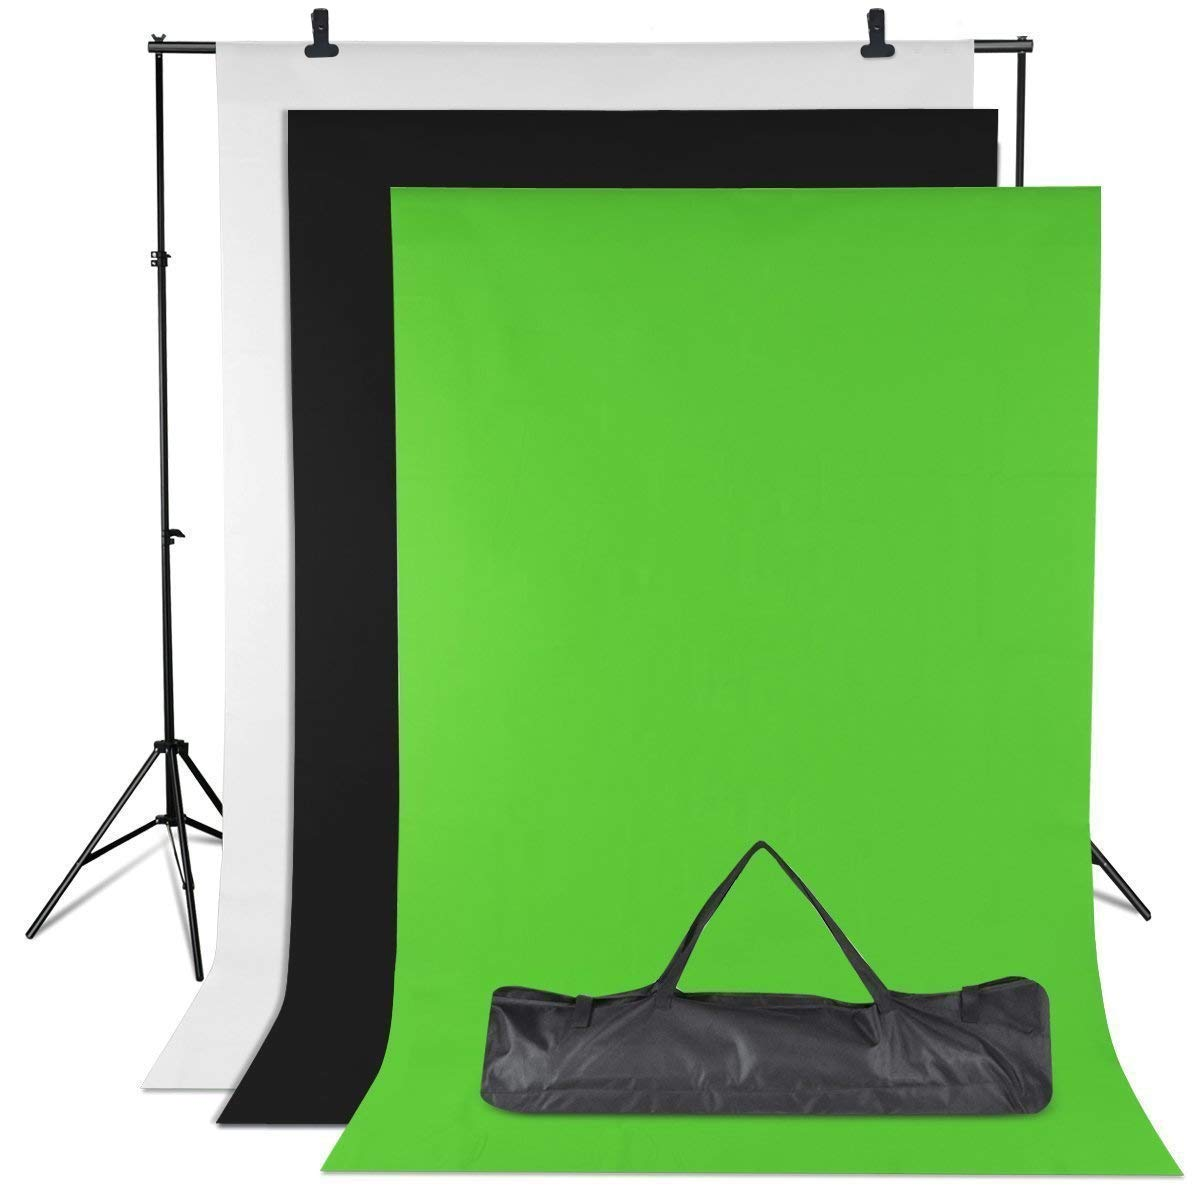 Amzdeal Photography Backdrop Stand Background Stand Support System 6.56ft X 9.84ft Video Photo Studio with Non Woven White Black Green Backdrop and Stand Kit